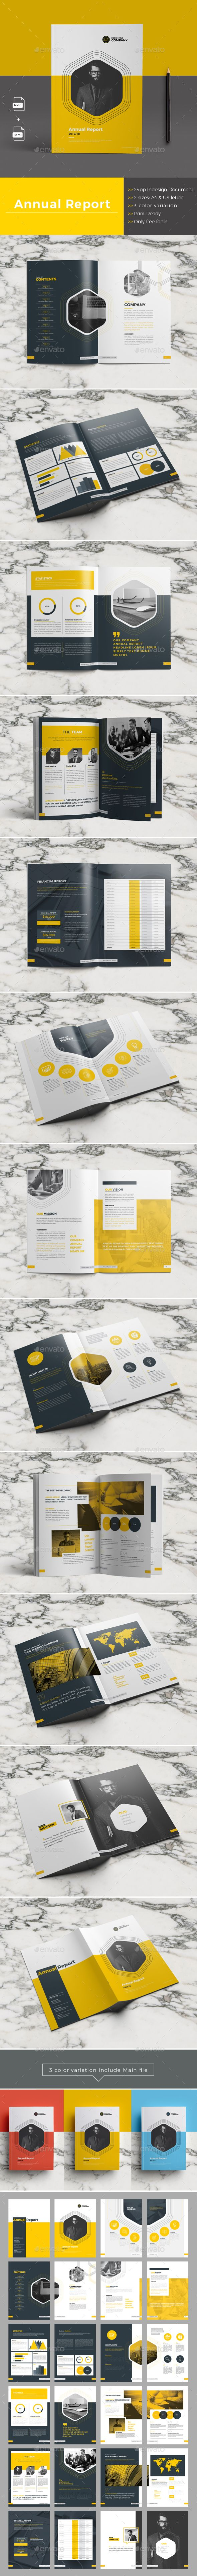 Annual Report - Brochure Template InDesign INDD - 24 Pages, A4 & US Letter Size